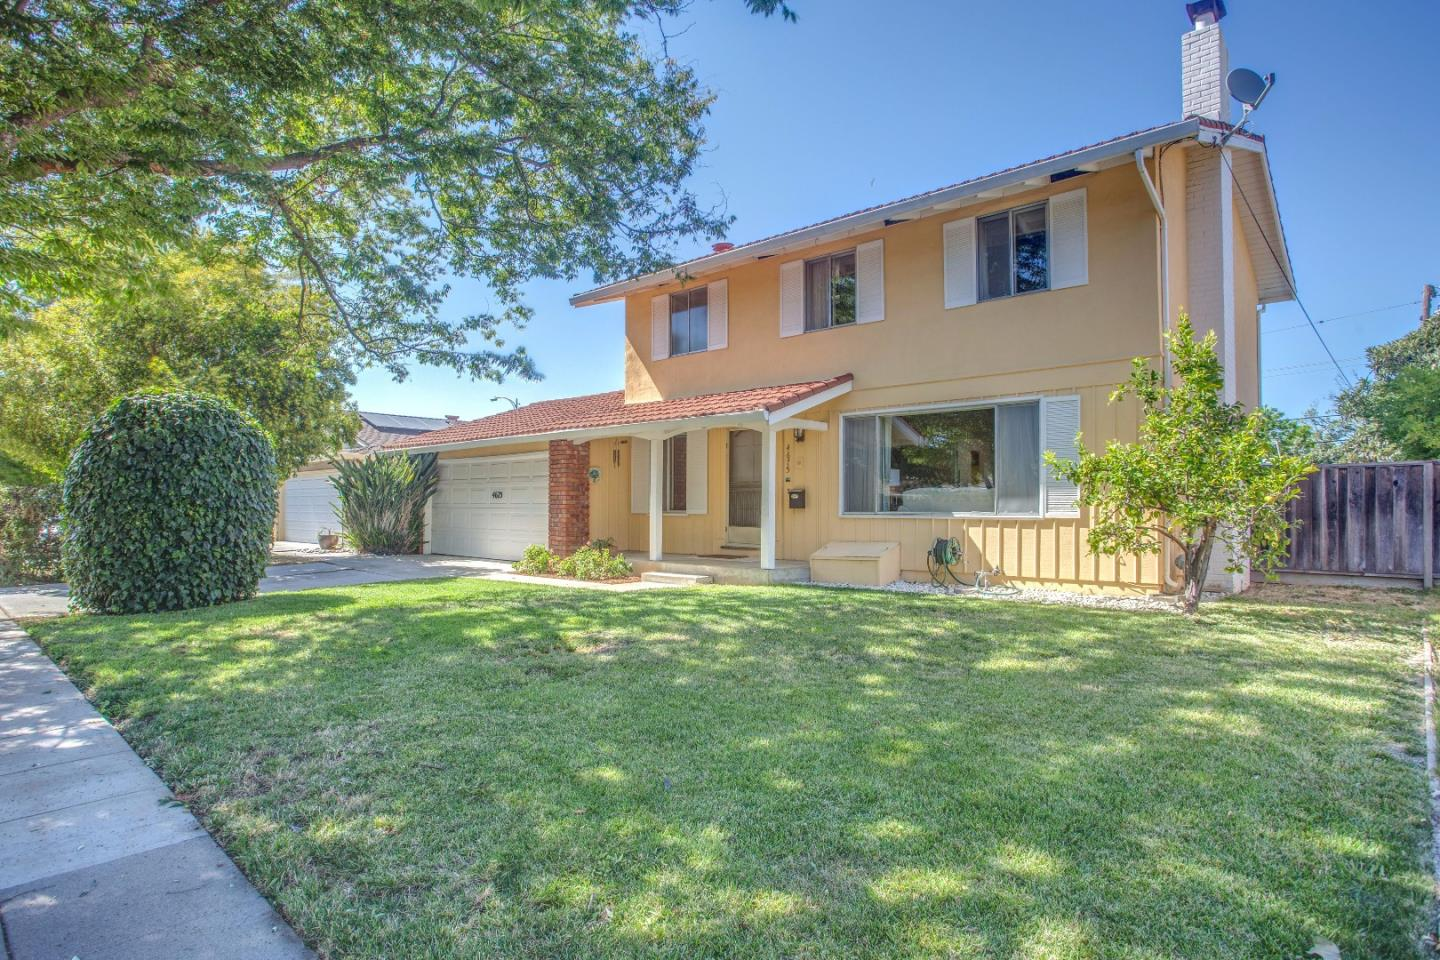 Additional photo for property listing at 4675 Doyle Road  San Jose, Kalifornien 95129 Vereinigte Staaten